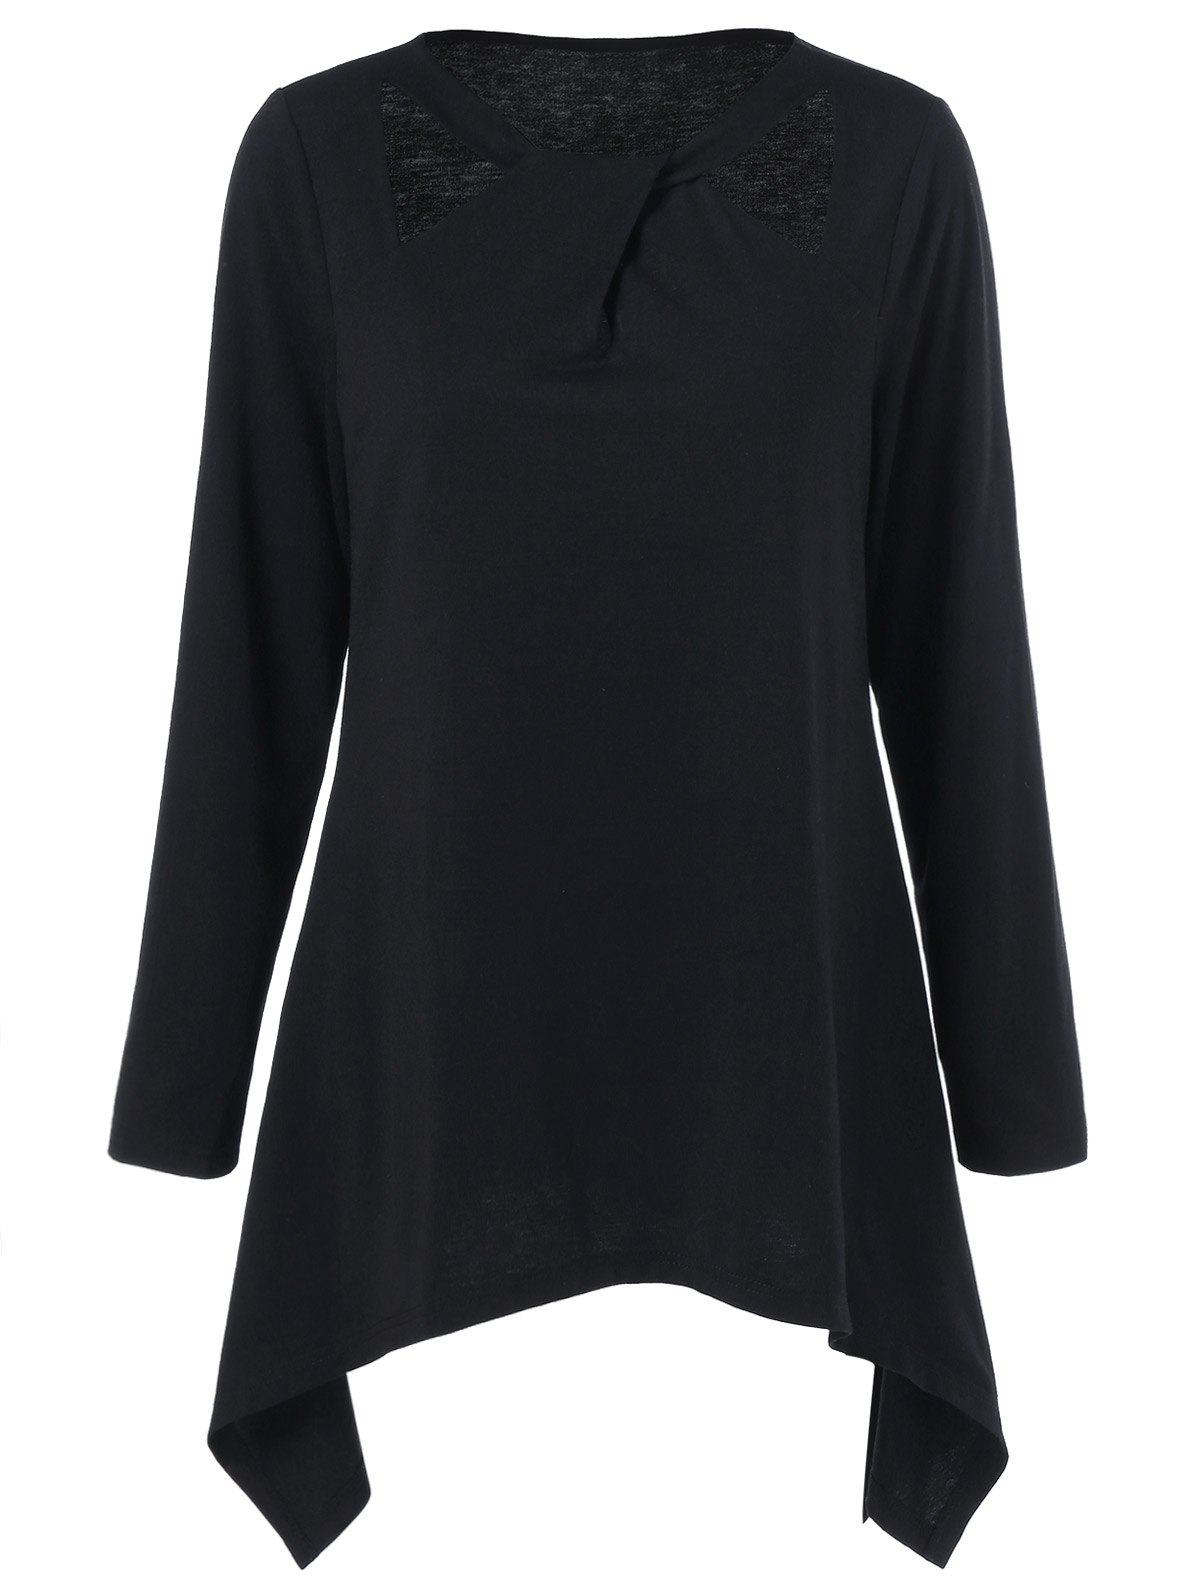 Cut Out Asymmetrical Plus Size Tee - BLACK 4XL